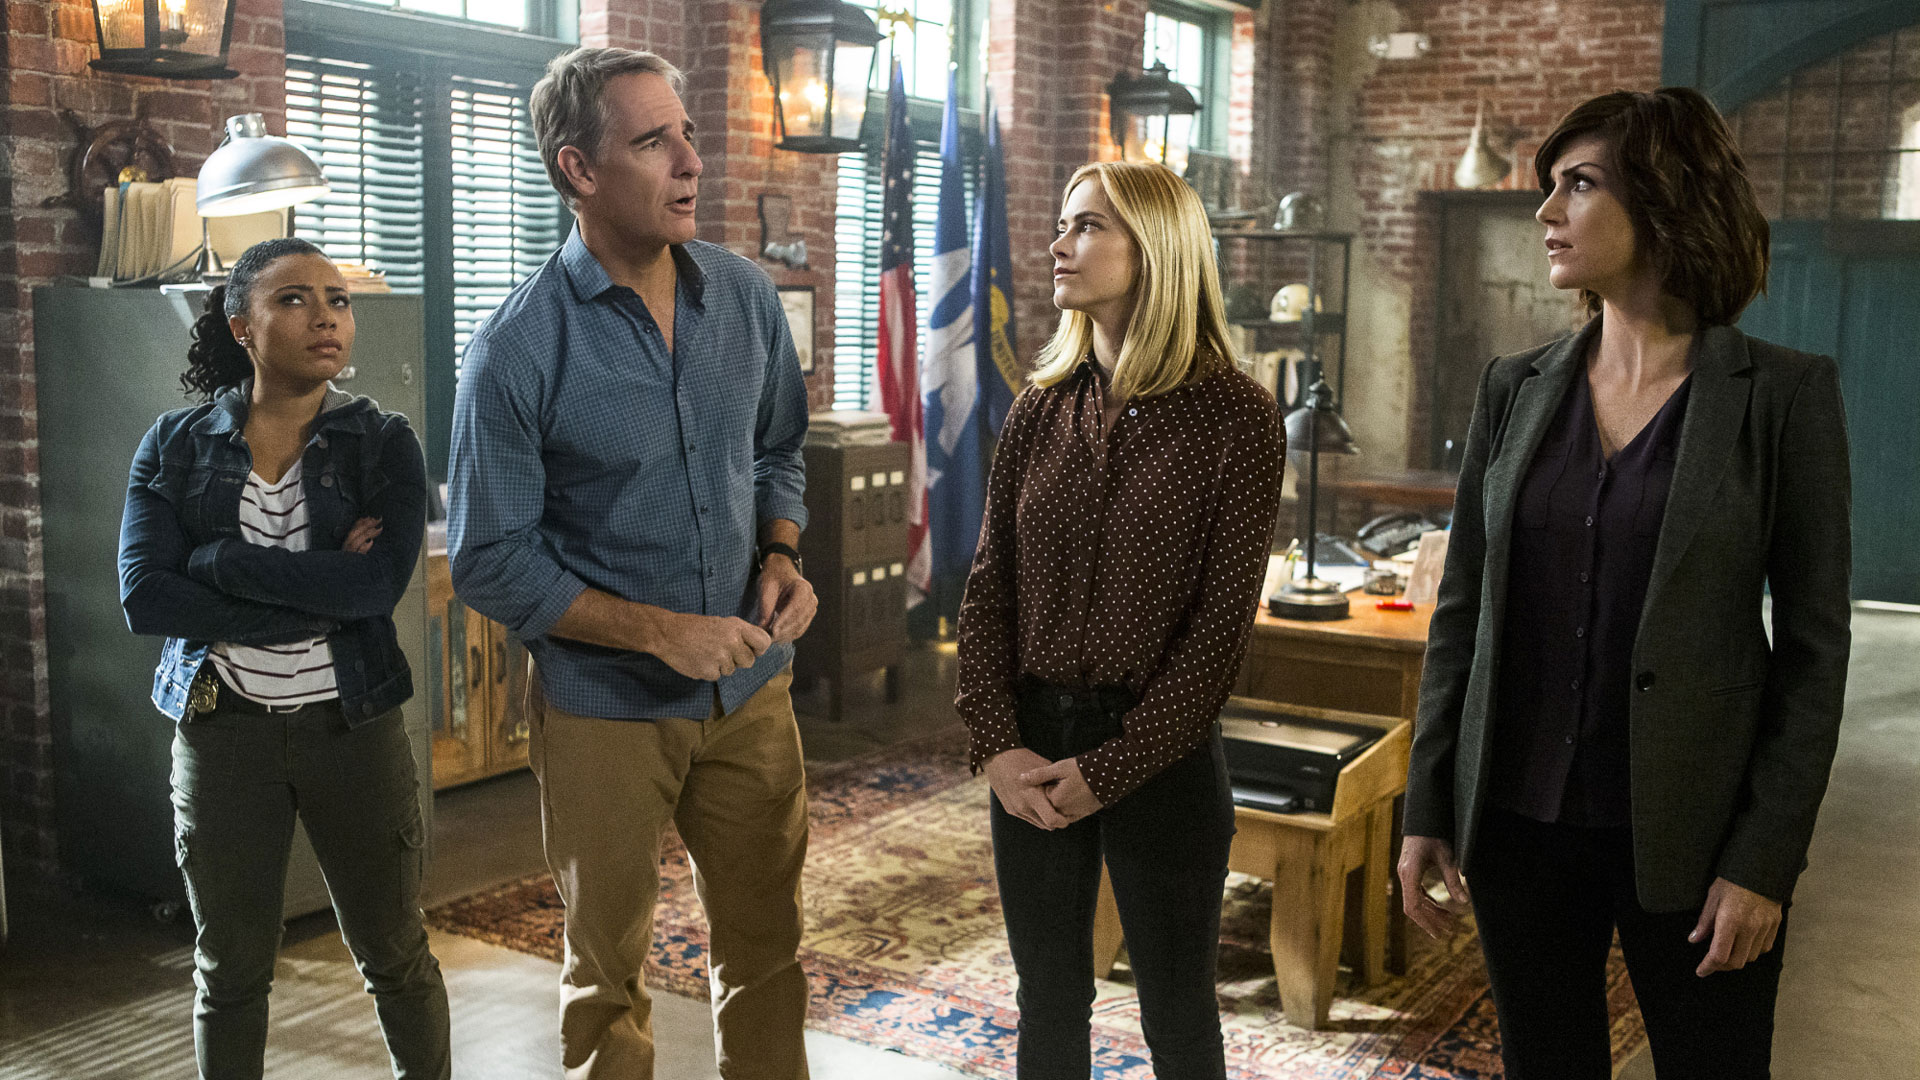 Shalita Grant as Sonja Percy, Scott Bakula as Agent Dwayne Pride, Emily Wickersham as Agent Ellie Bishop, and Zoe McLellan as Agent Meredith Brody